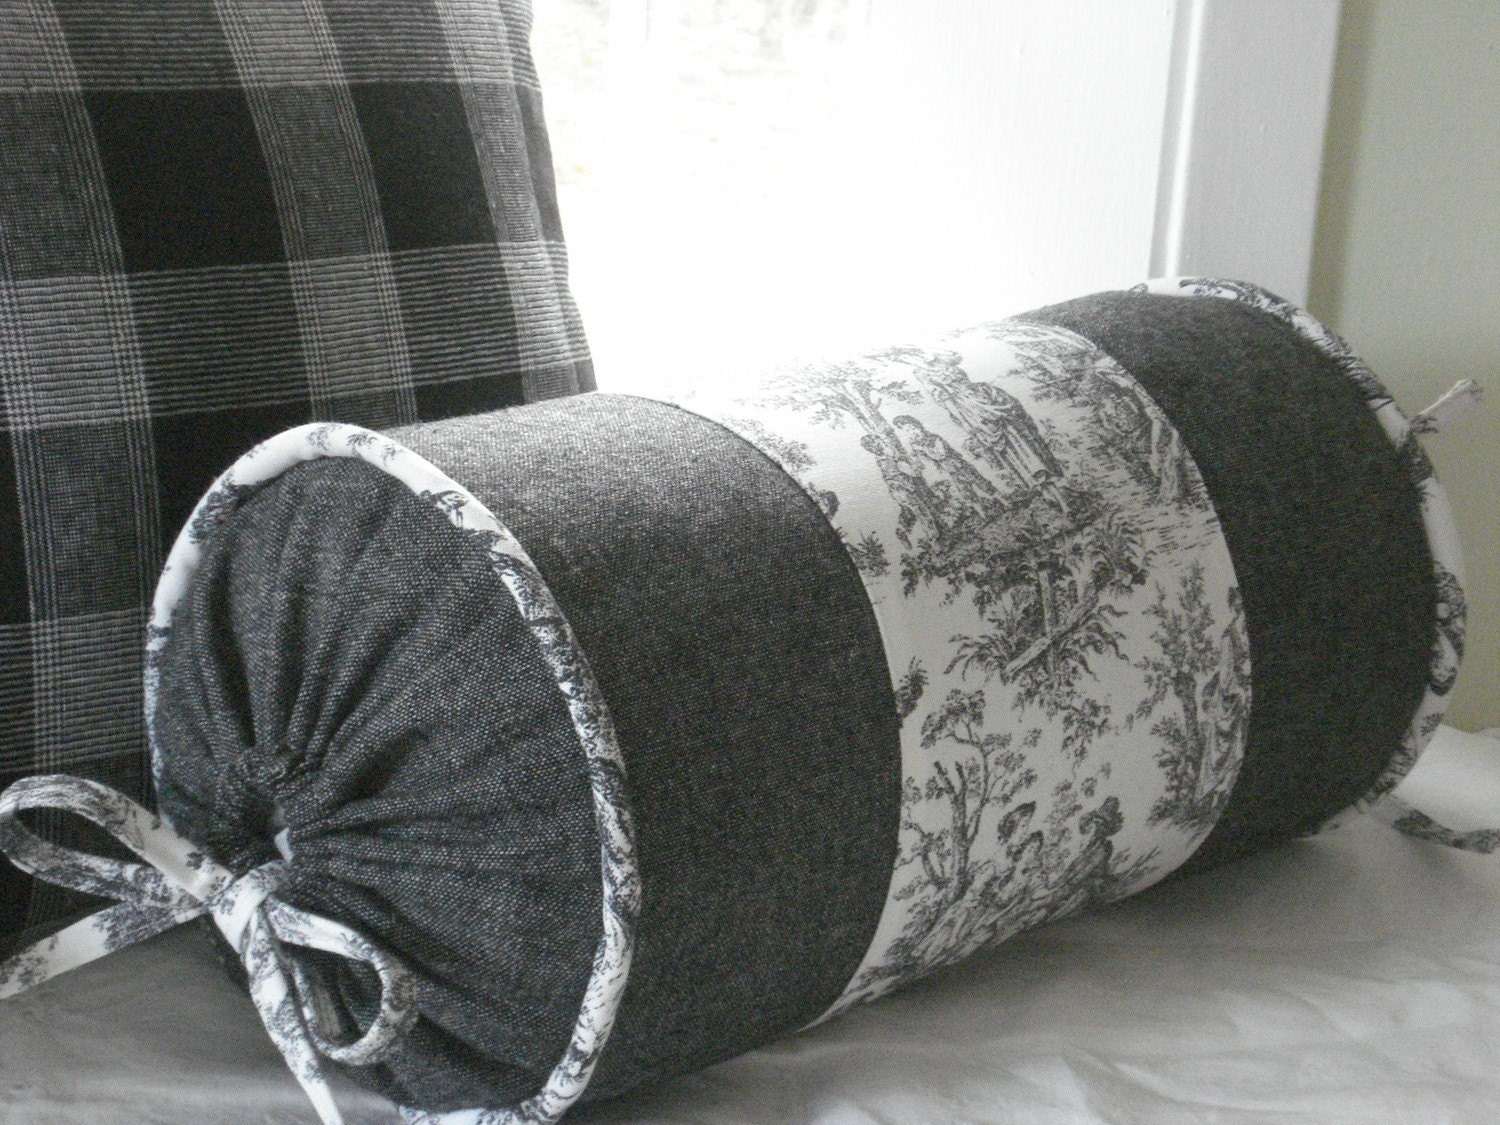 New decorative designer bolster pillow by Sew bolster pillow cover